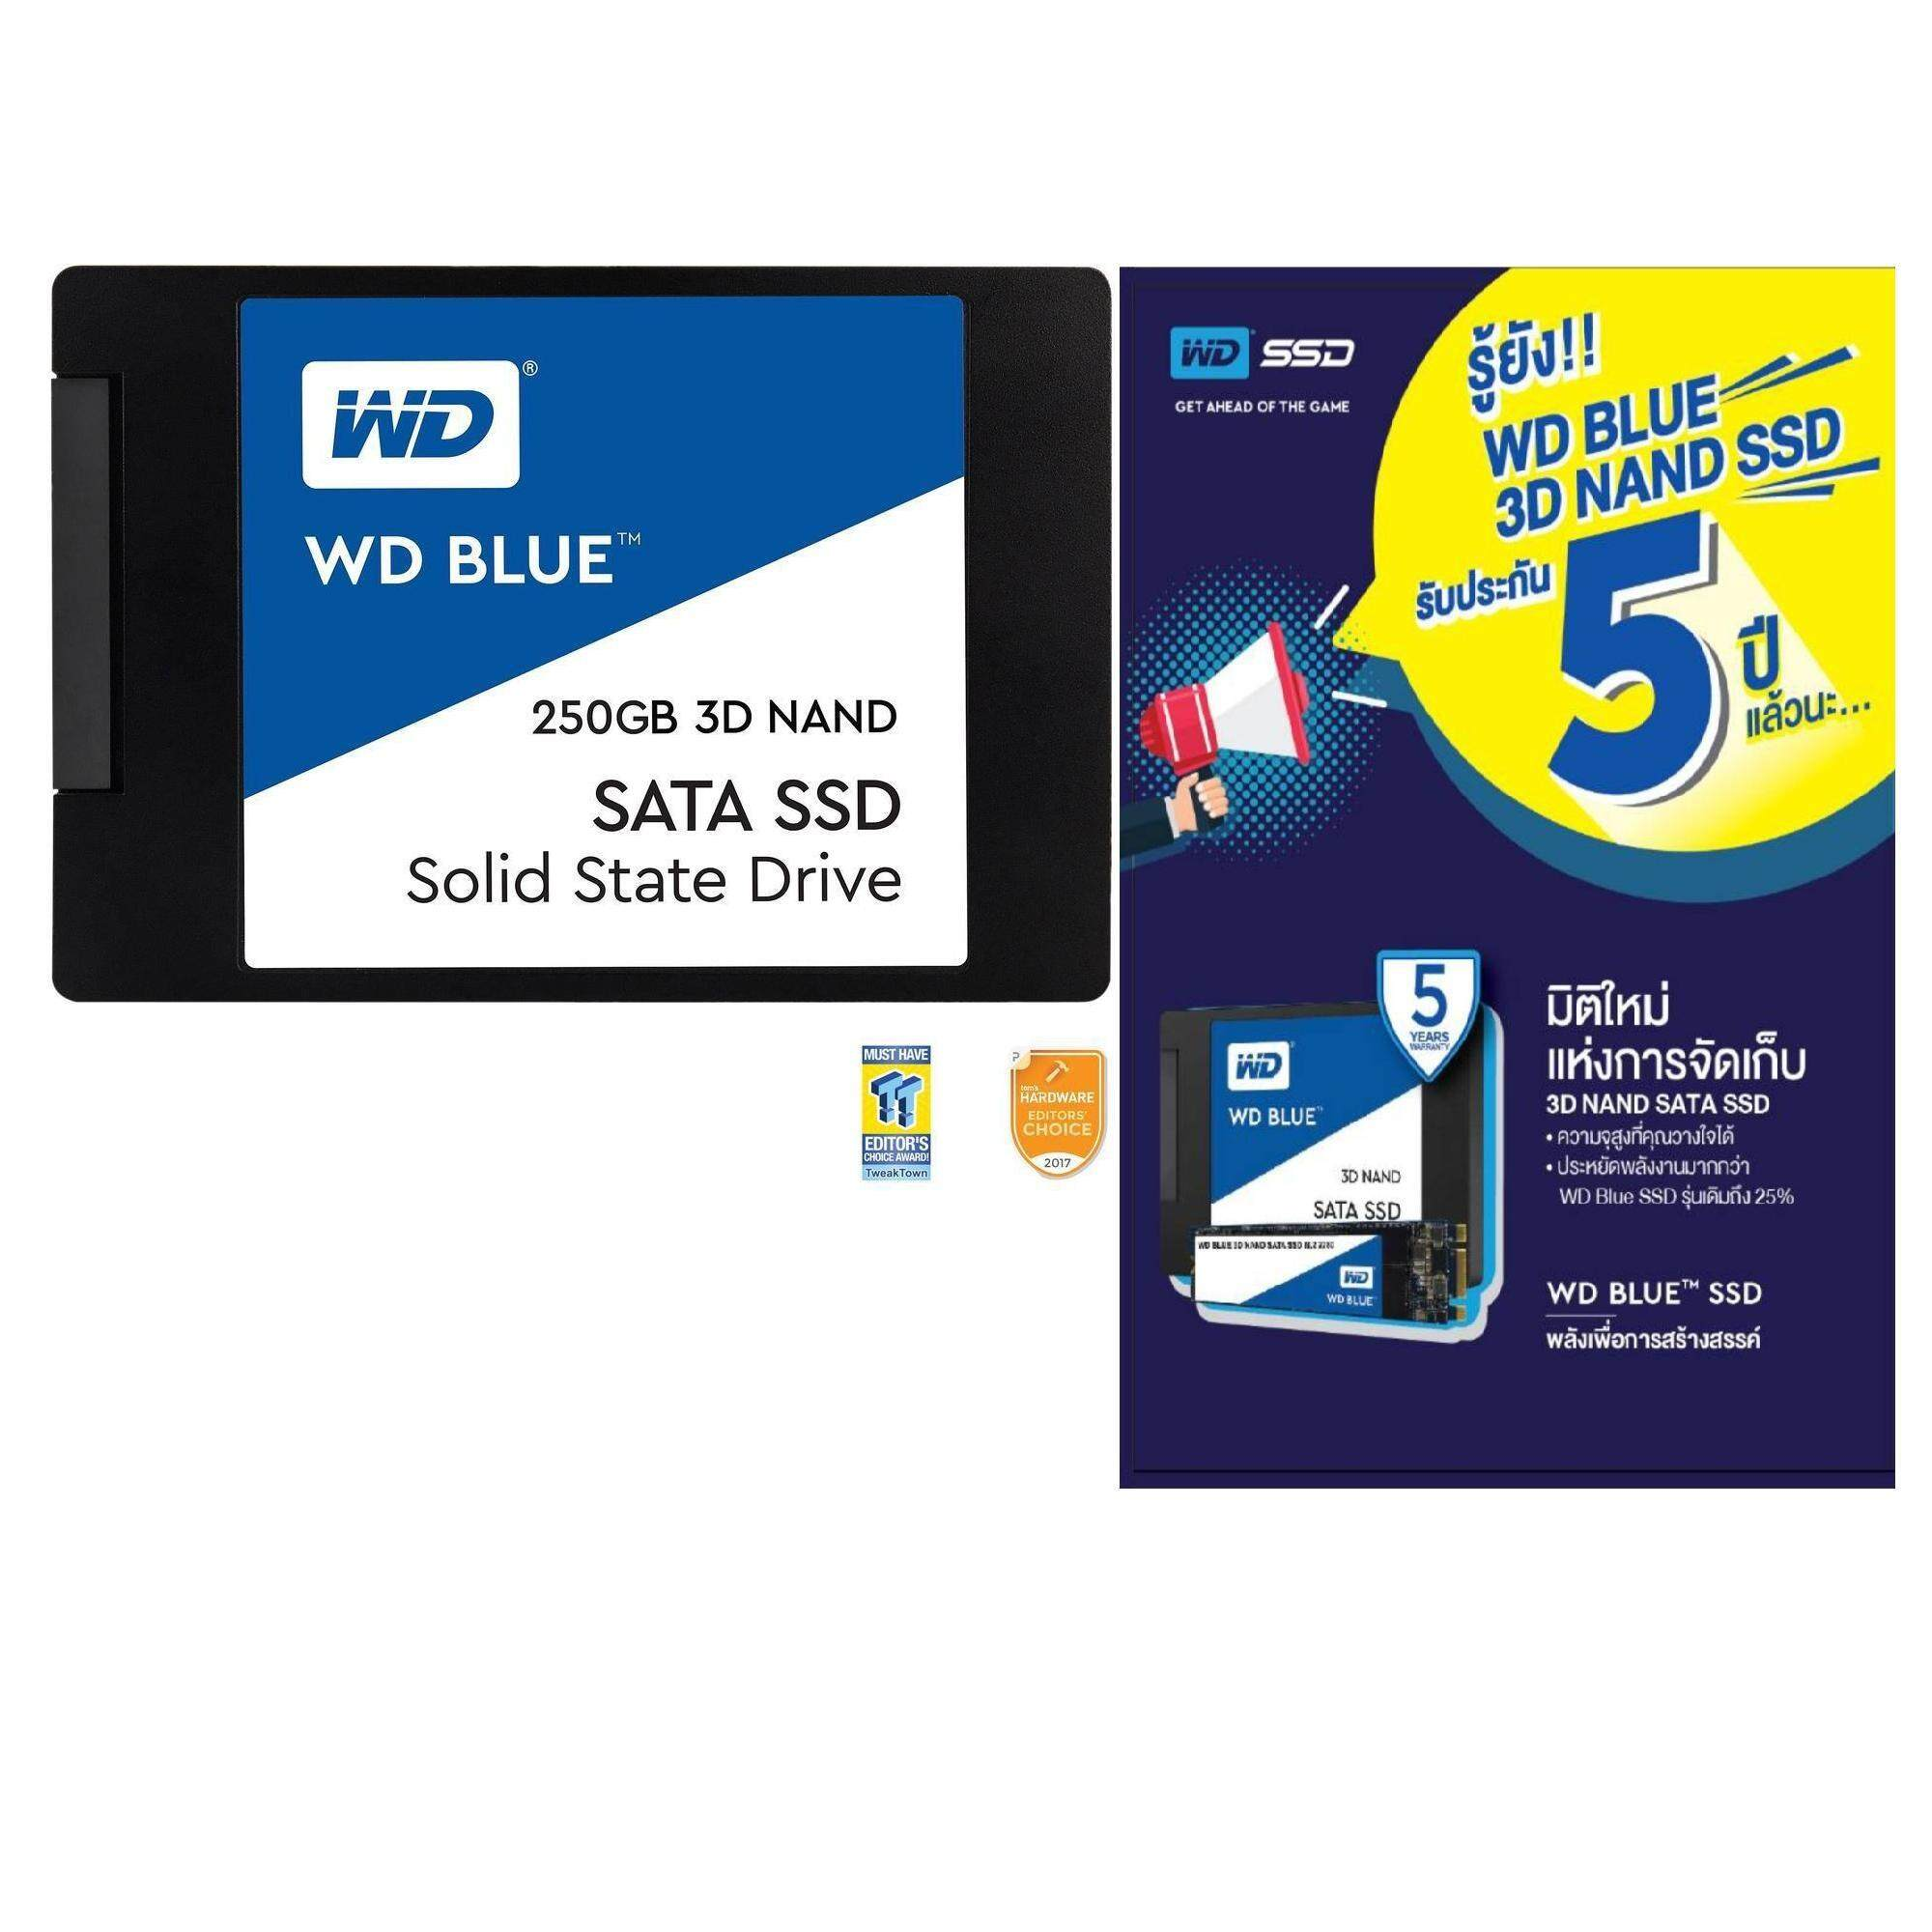 โปรโมชั่น 250Gb Ssd เอสเอสดี Wd Blue 3D Nand 250Gb Pc Ssd Sata Iii 6 Gb S 2 5 7Mm Solid State Drive Wds250G2B0A 5 Years Waranty By Synnex Wd 40 ใหม่ล่าสุด